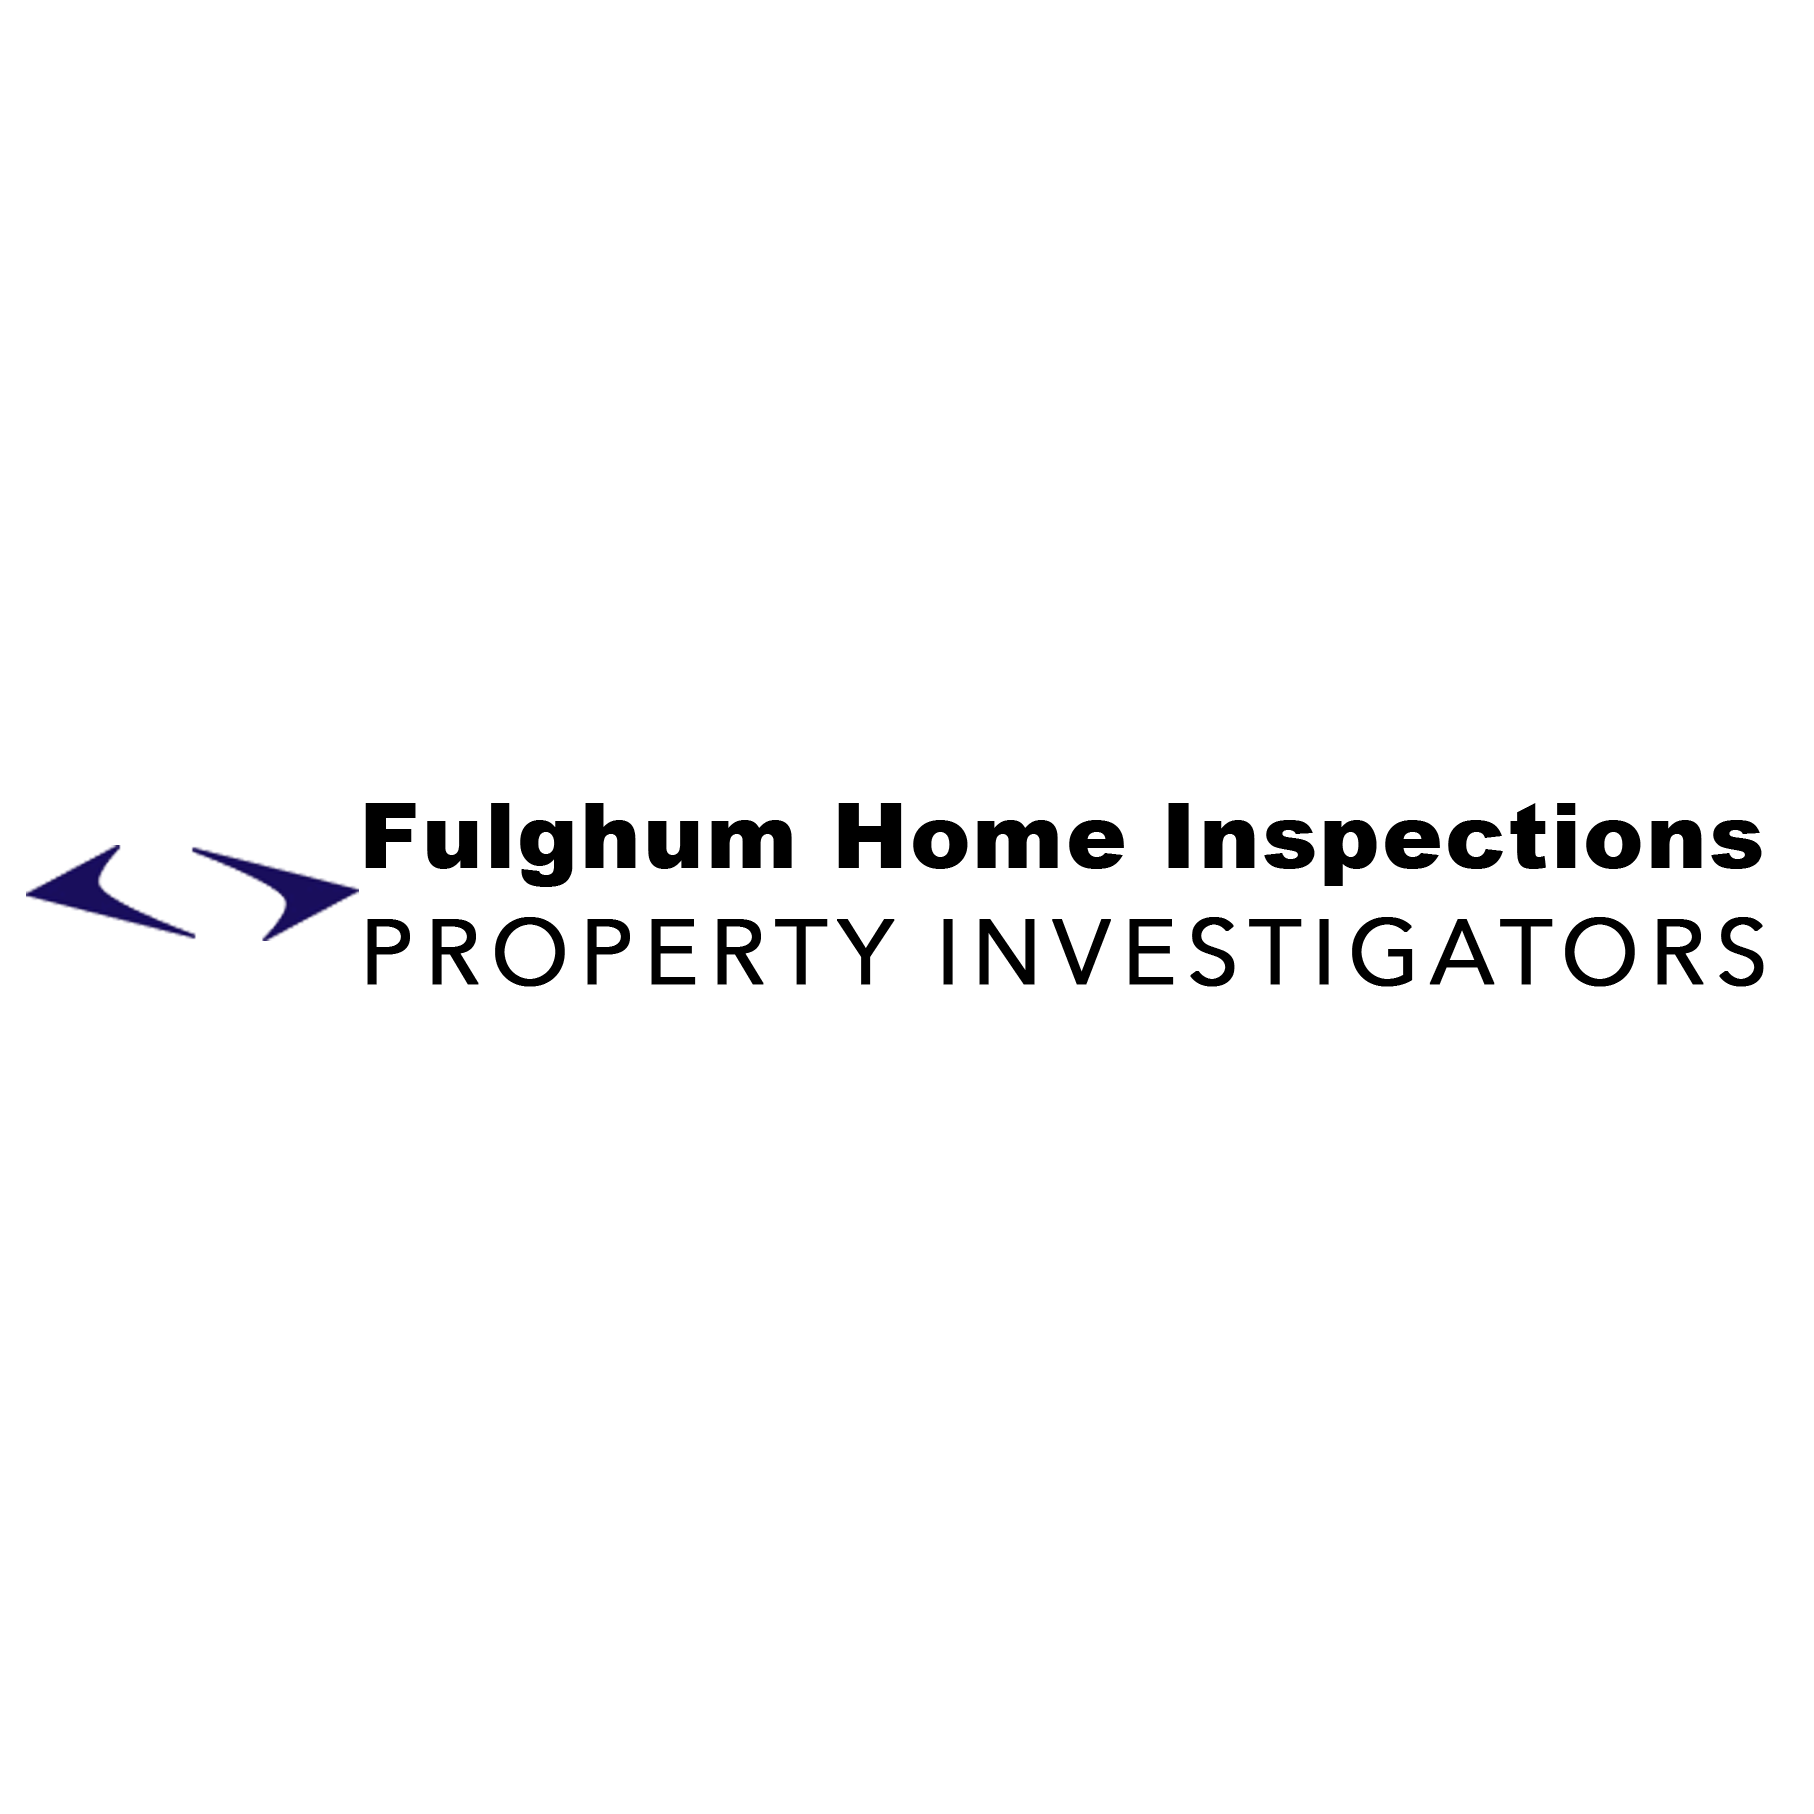 Fulghum Home Inspections